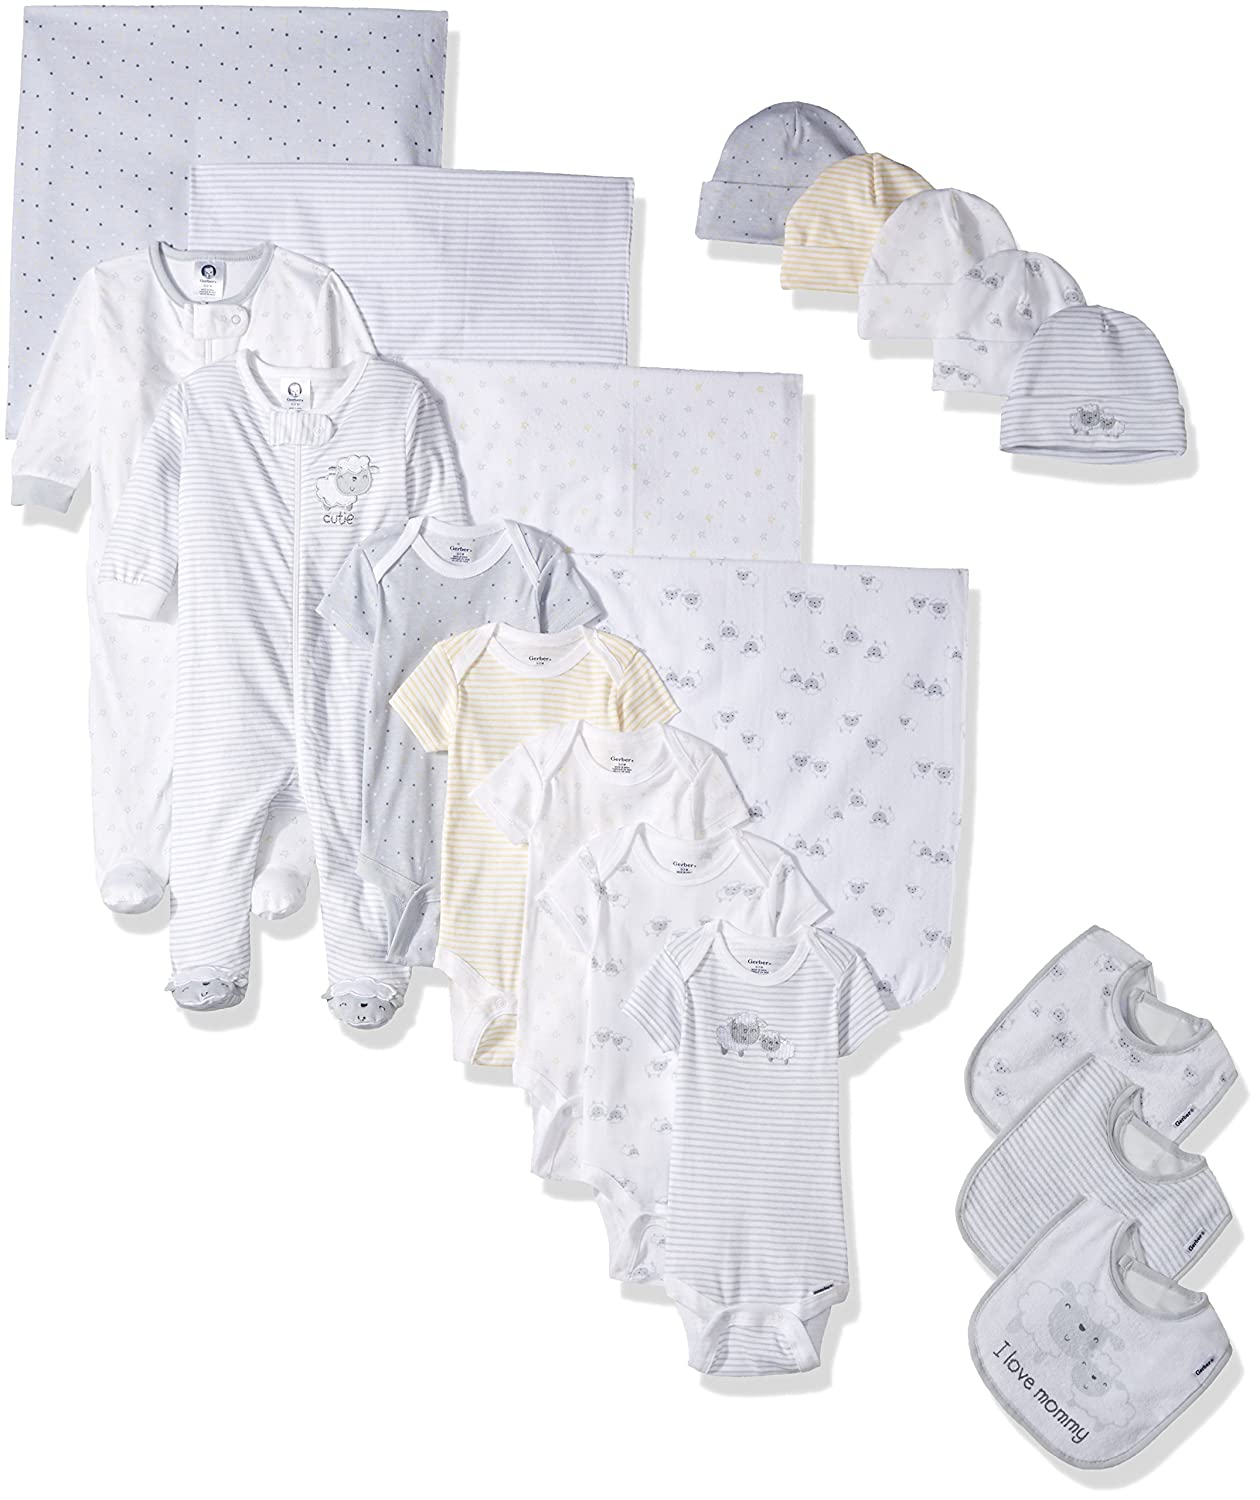 Gerber Baby 19-Piece Essentials Gift Set Teddy Newborn Gerber Children' s Apparel 95792016AN17AST